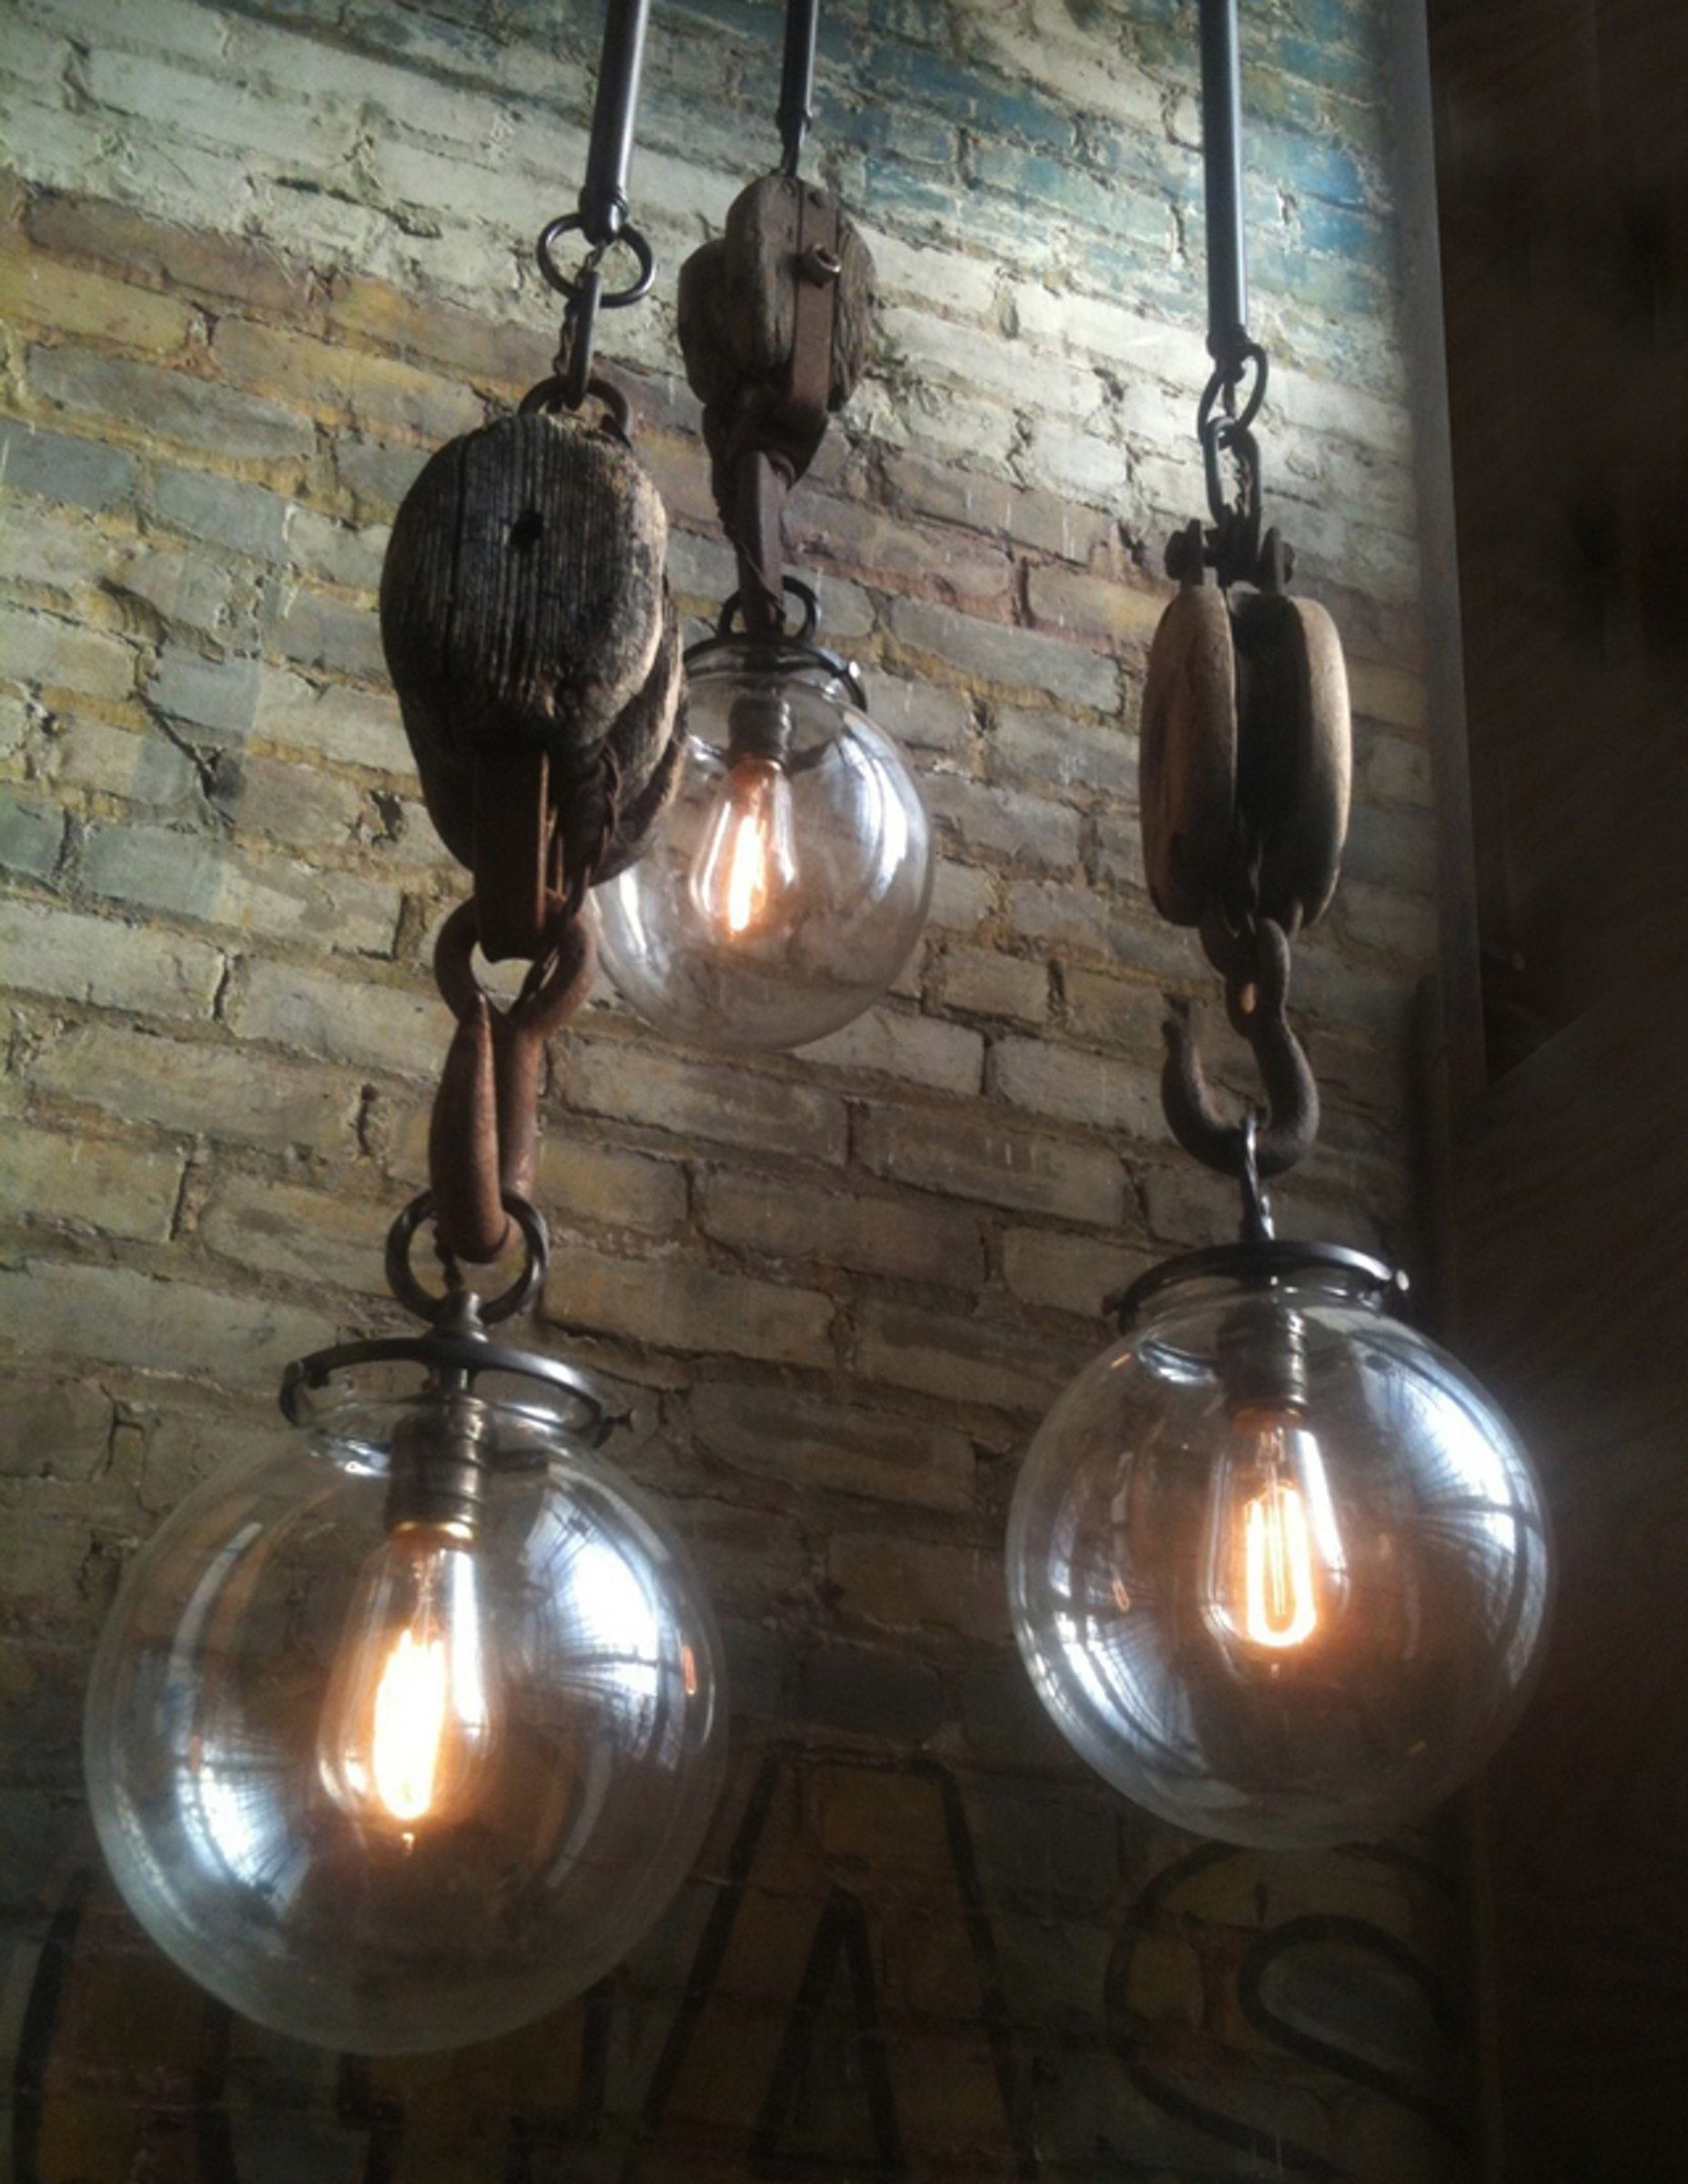 easy pieces u upcycled lighting pendant lamps repurposed and